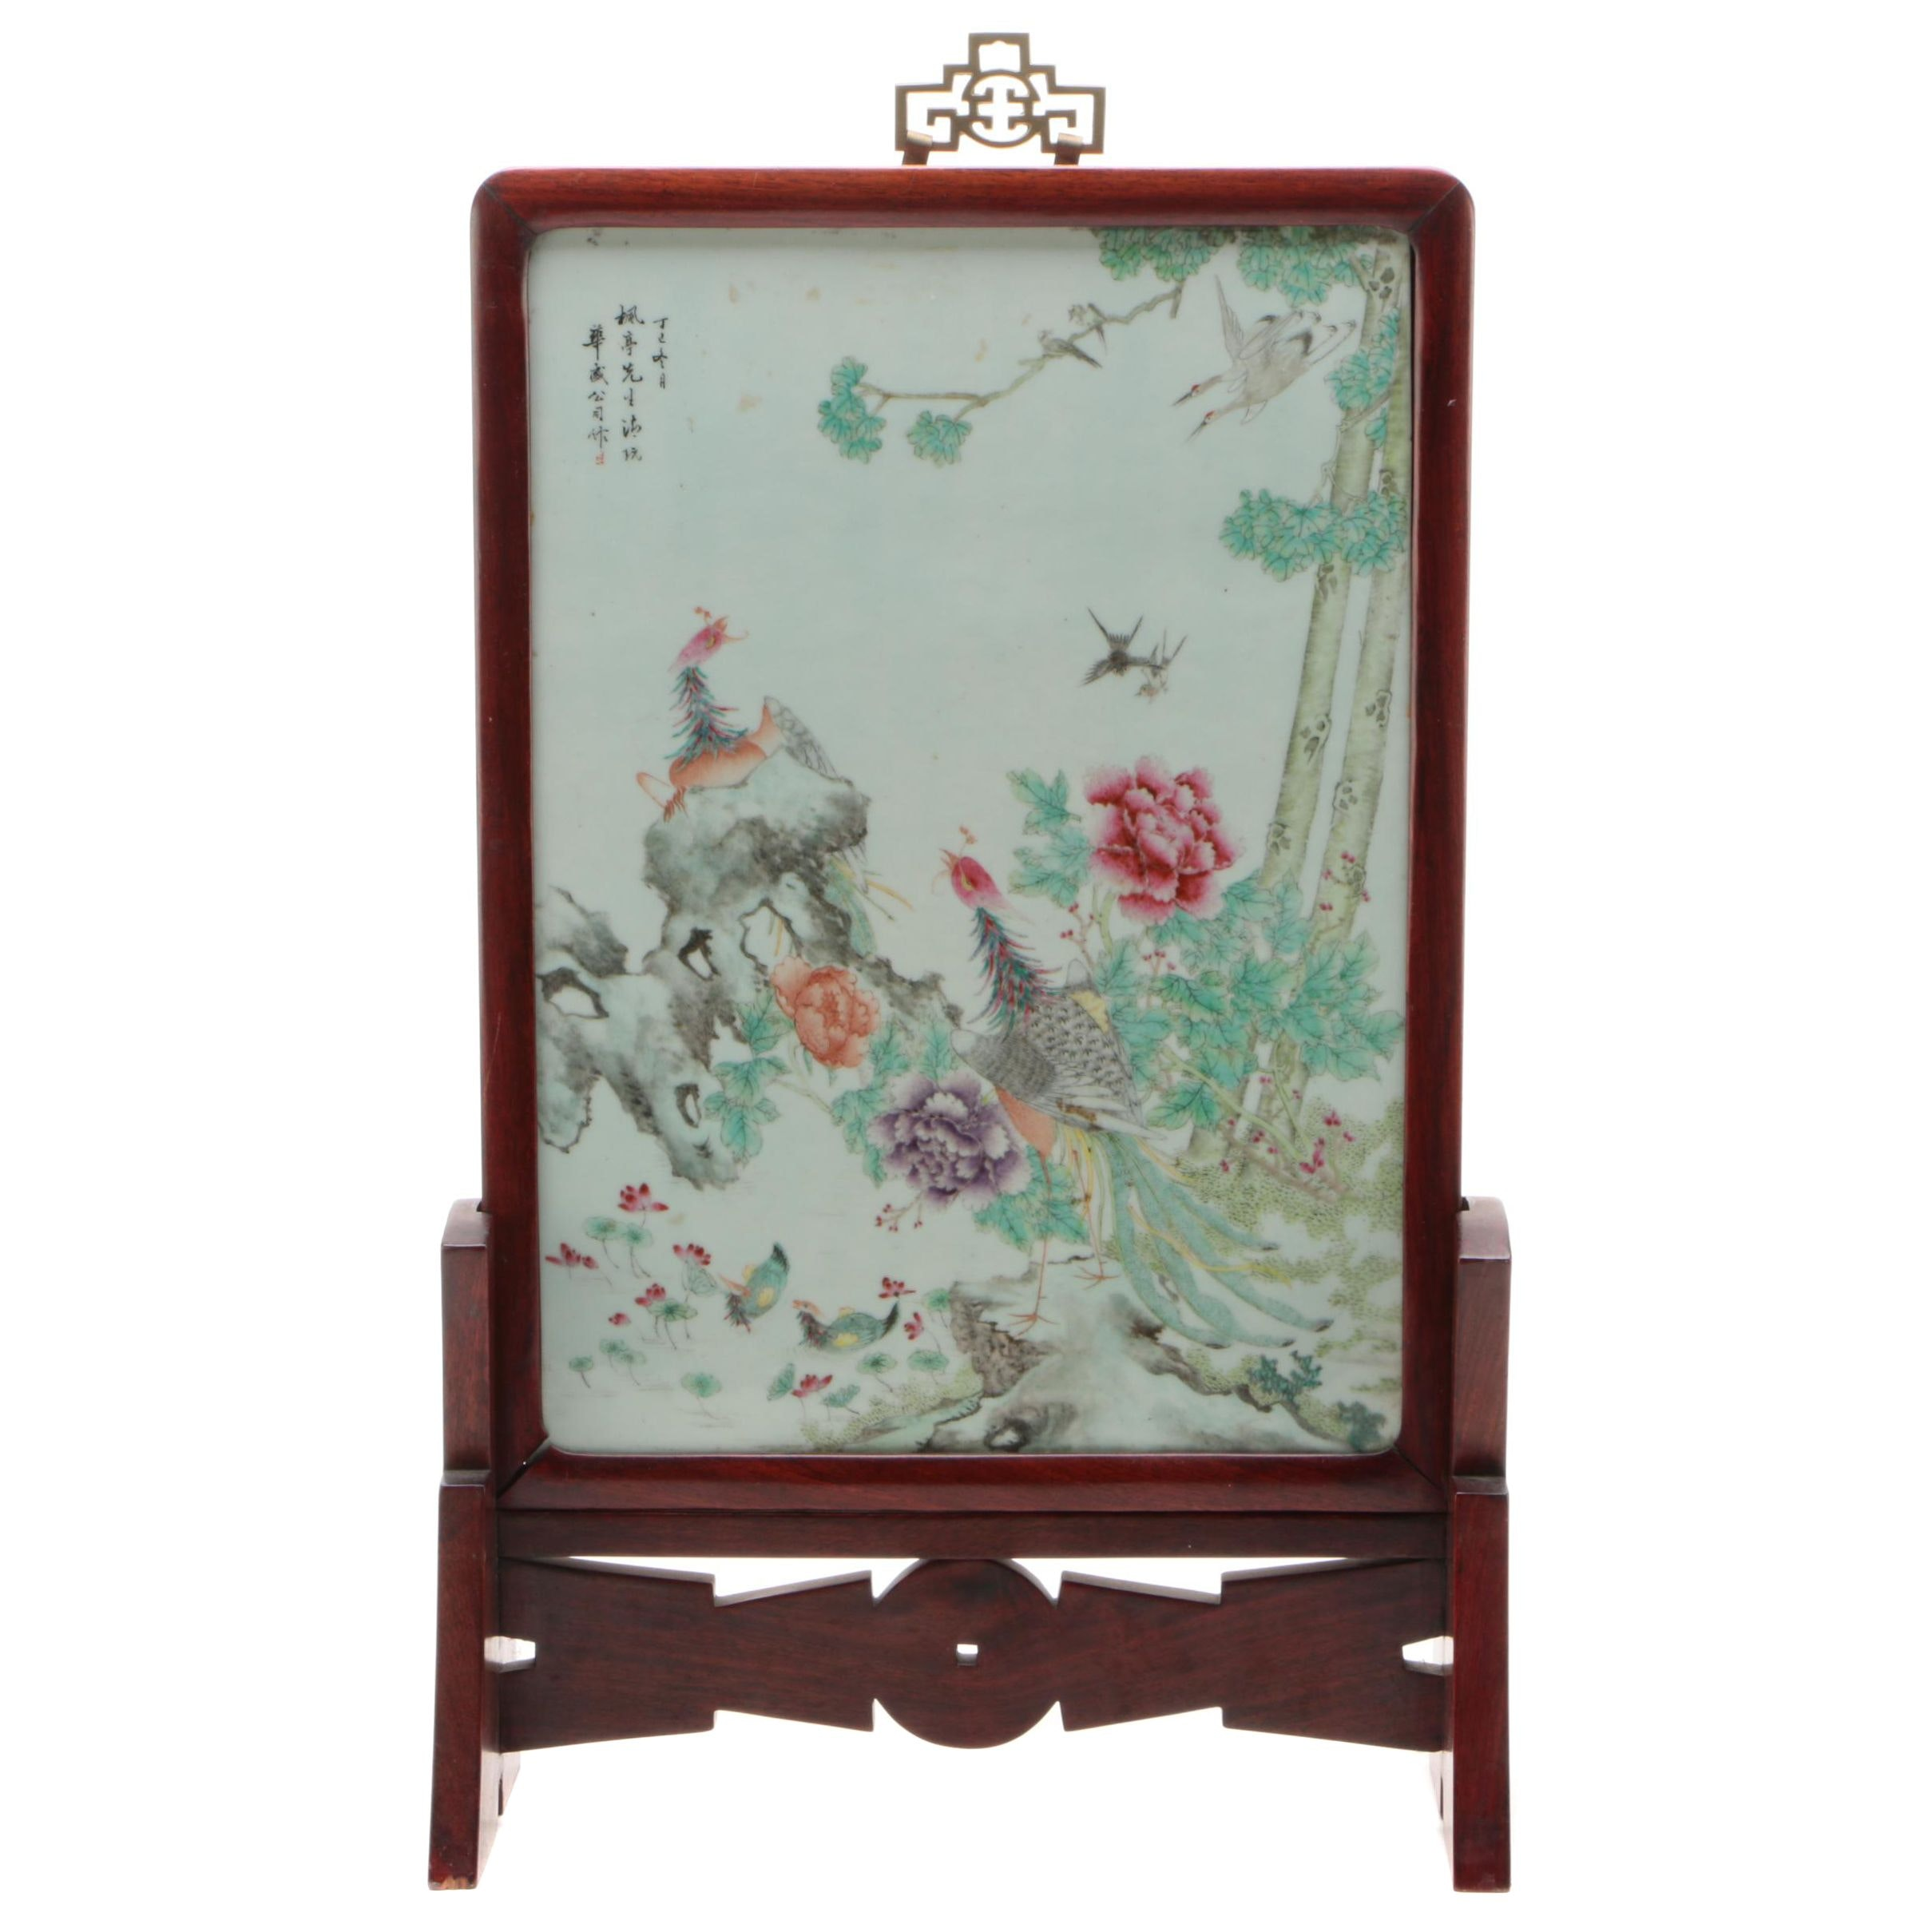 Chinese Famille Rose Porcelain Plaque Hardwood Table Screen, Late Qing/Republic